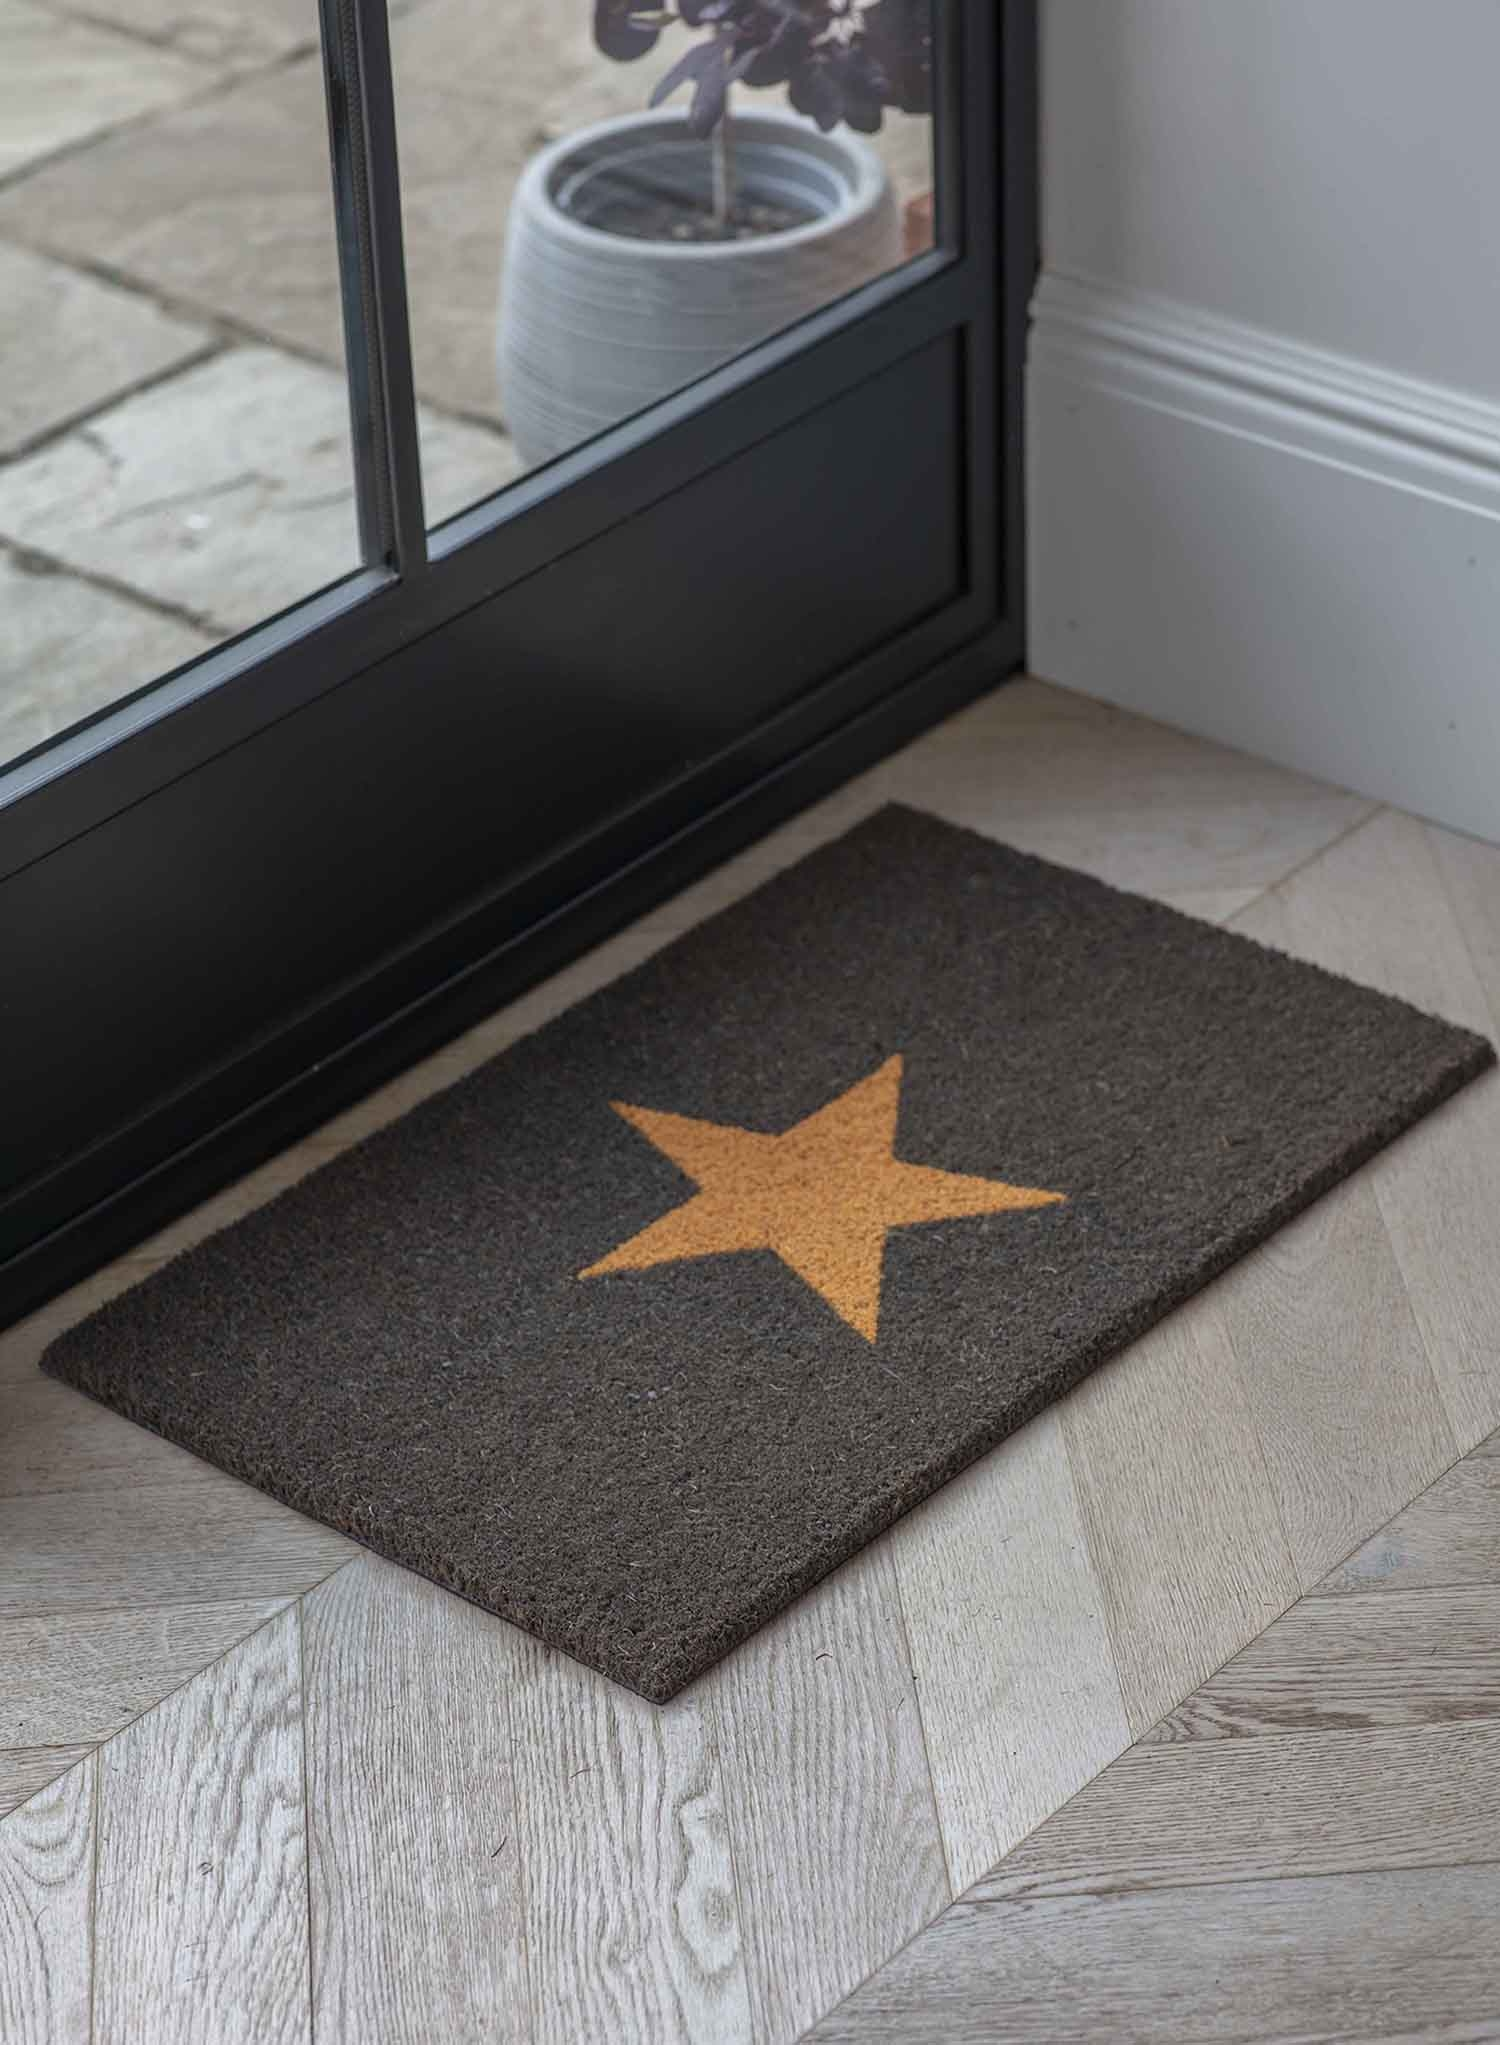 Image of Garden Trading Small Star Doormat, Charcoal